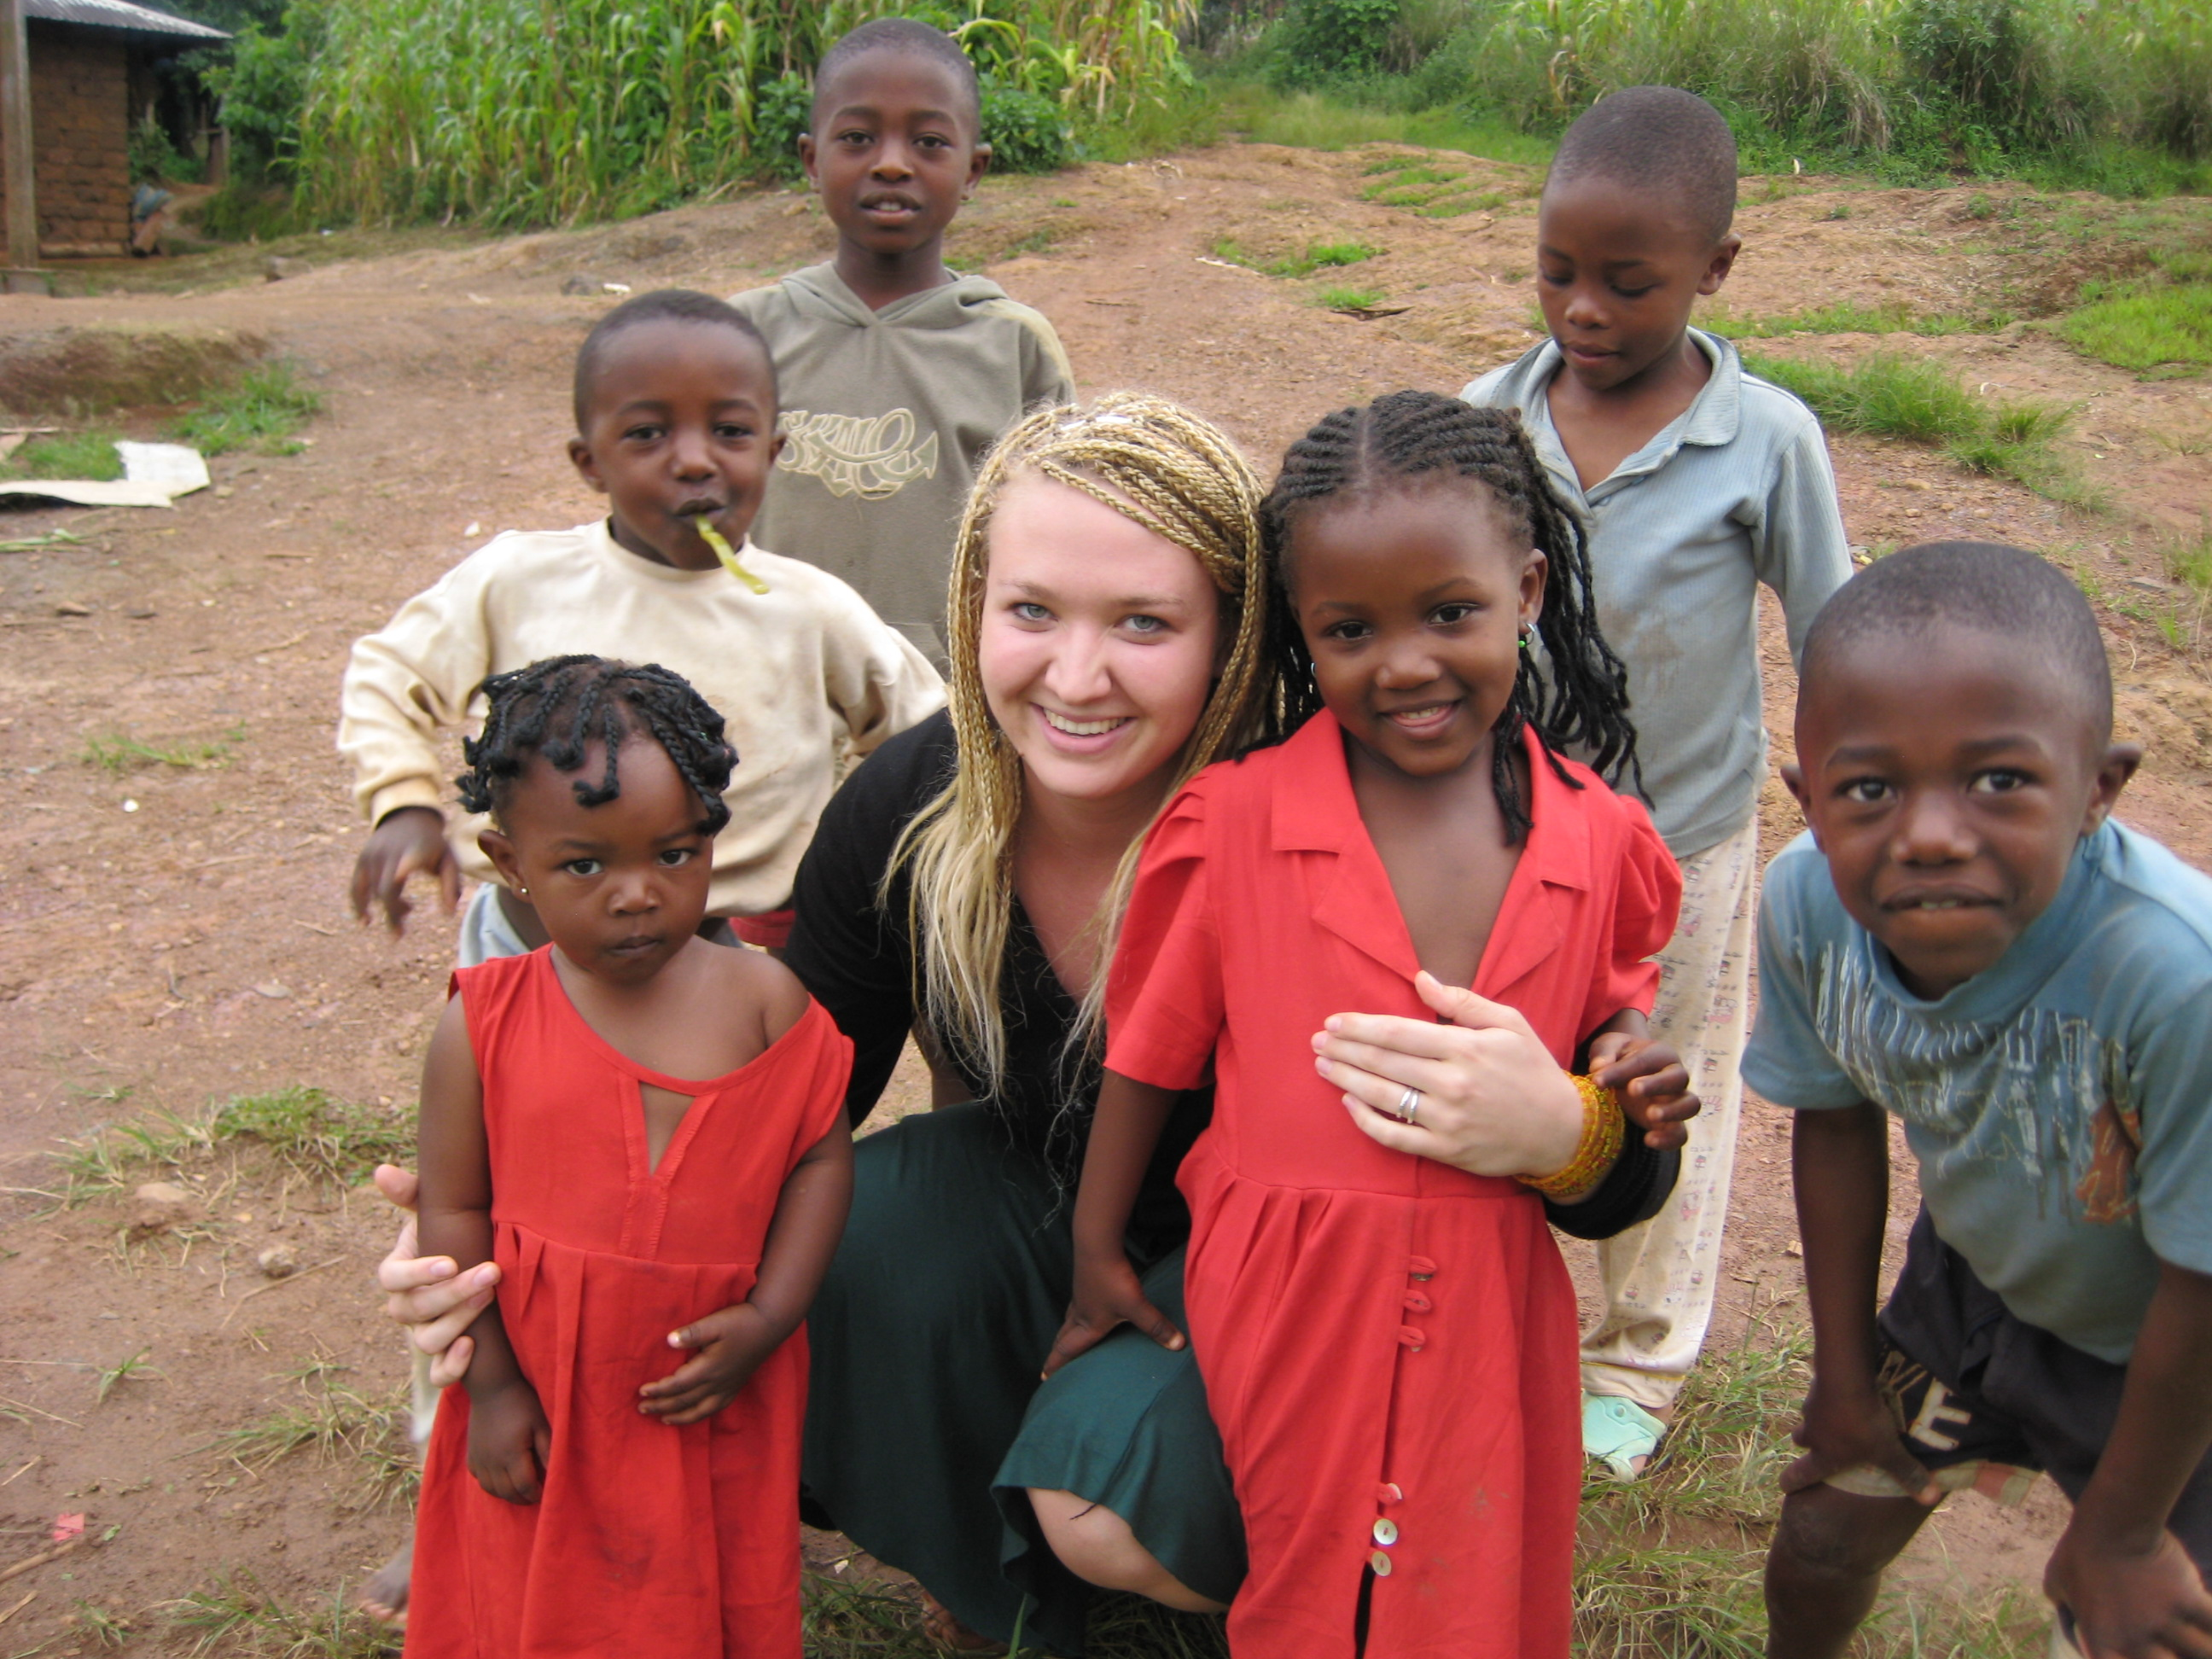 Megan Chapman | Kiva Stories from the Field